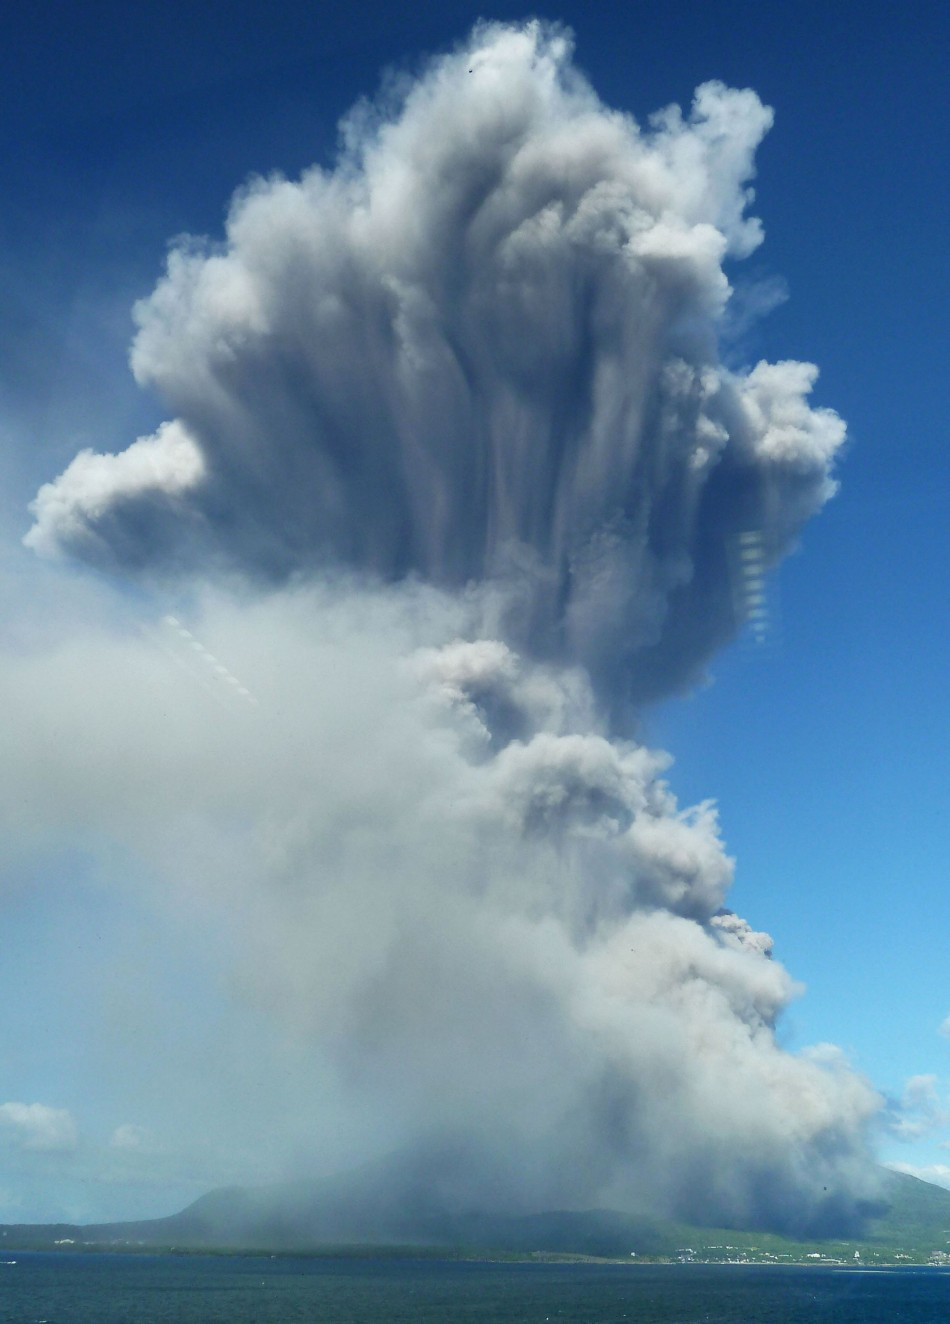 Smoke rises after an eruption of Mount Sakurajima in Kagoshima, southwestern Japan, in this photo taken through a window by Kyodo August 18, 2013. The eruption on Sunday of the 1,117-metre (3665-feet) high volcano, one of Japan's most active volcanoes, sent up the highest plume in recorded history of about 5,000 metres (16,404 feet). (Photo: REUTERS/Kyodo)